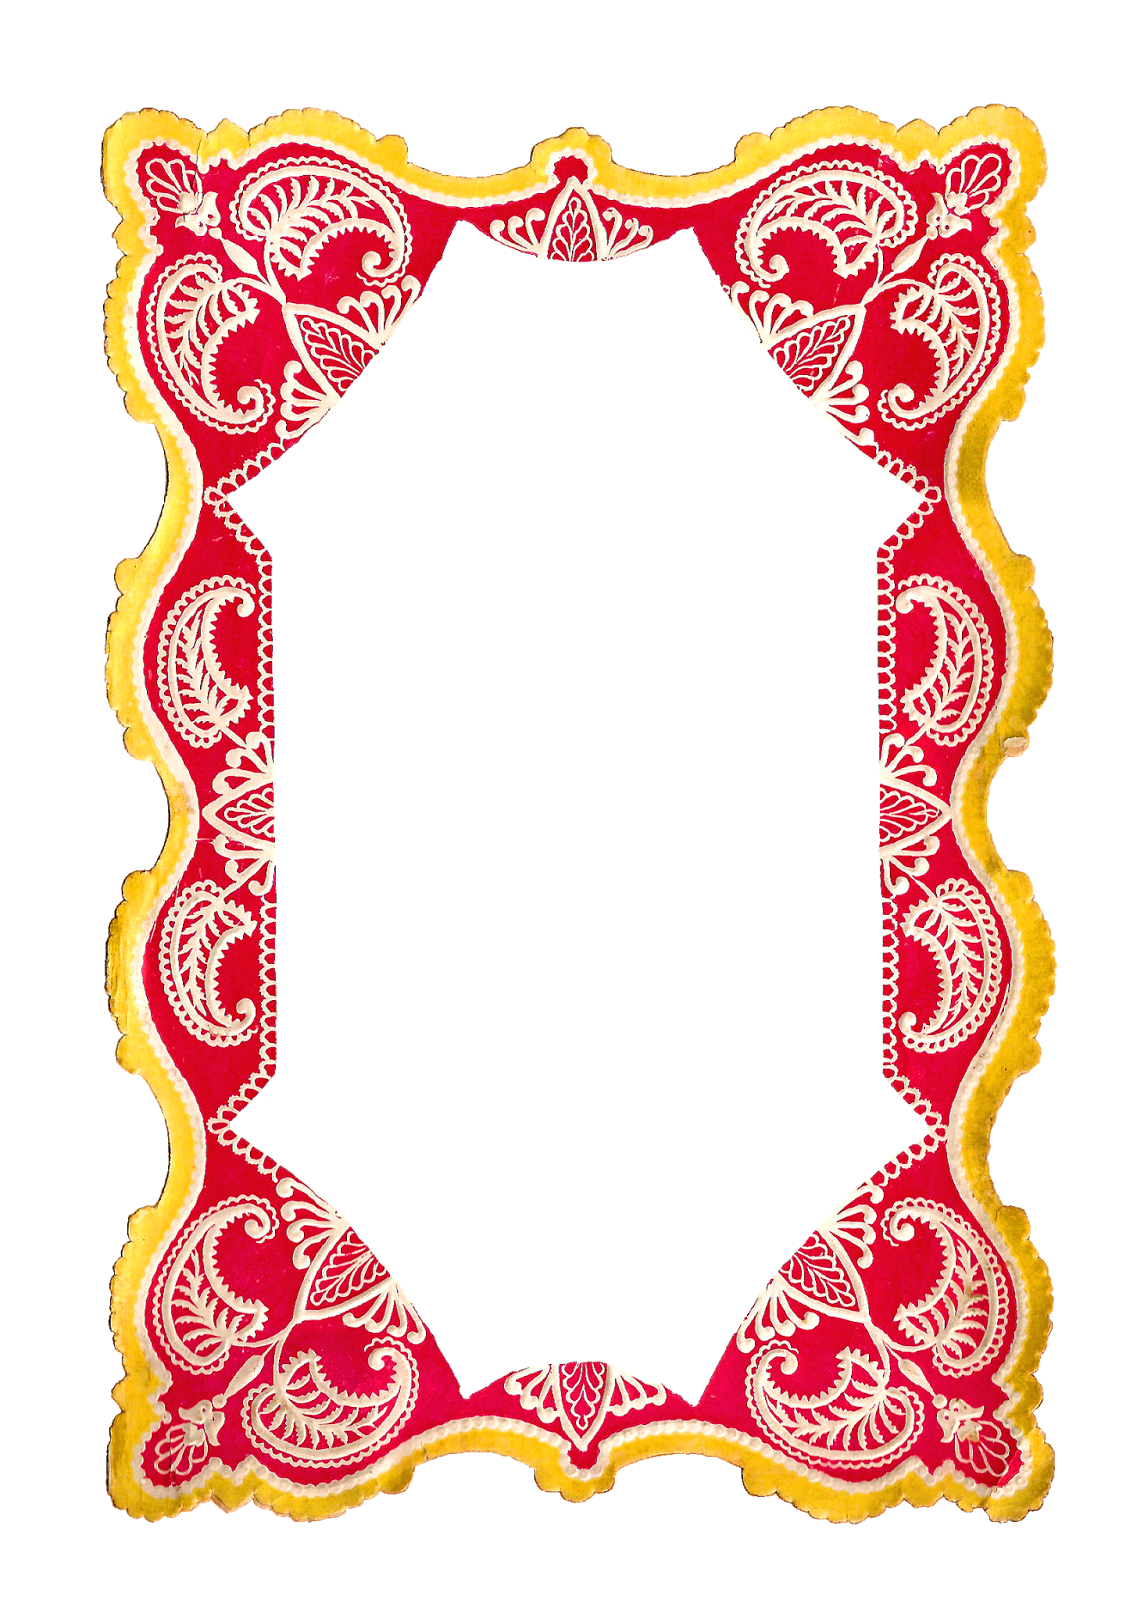 Antique images free digital. Paisley clipart boarder